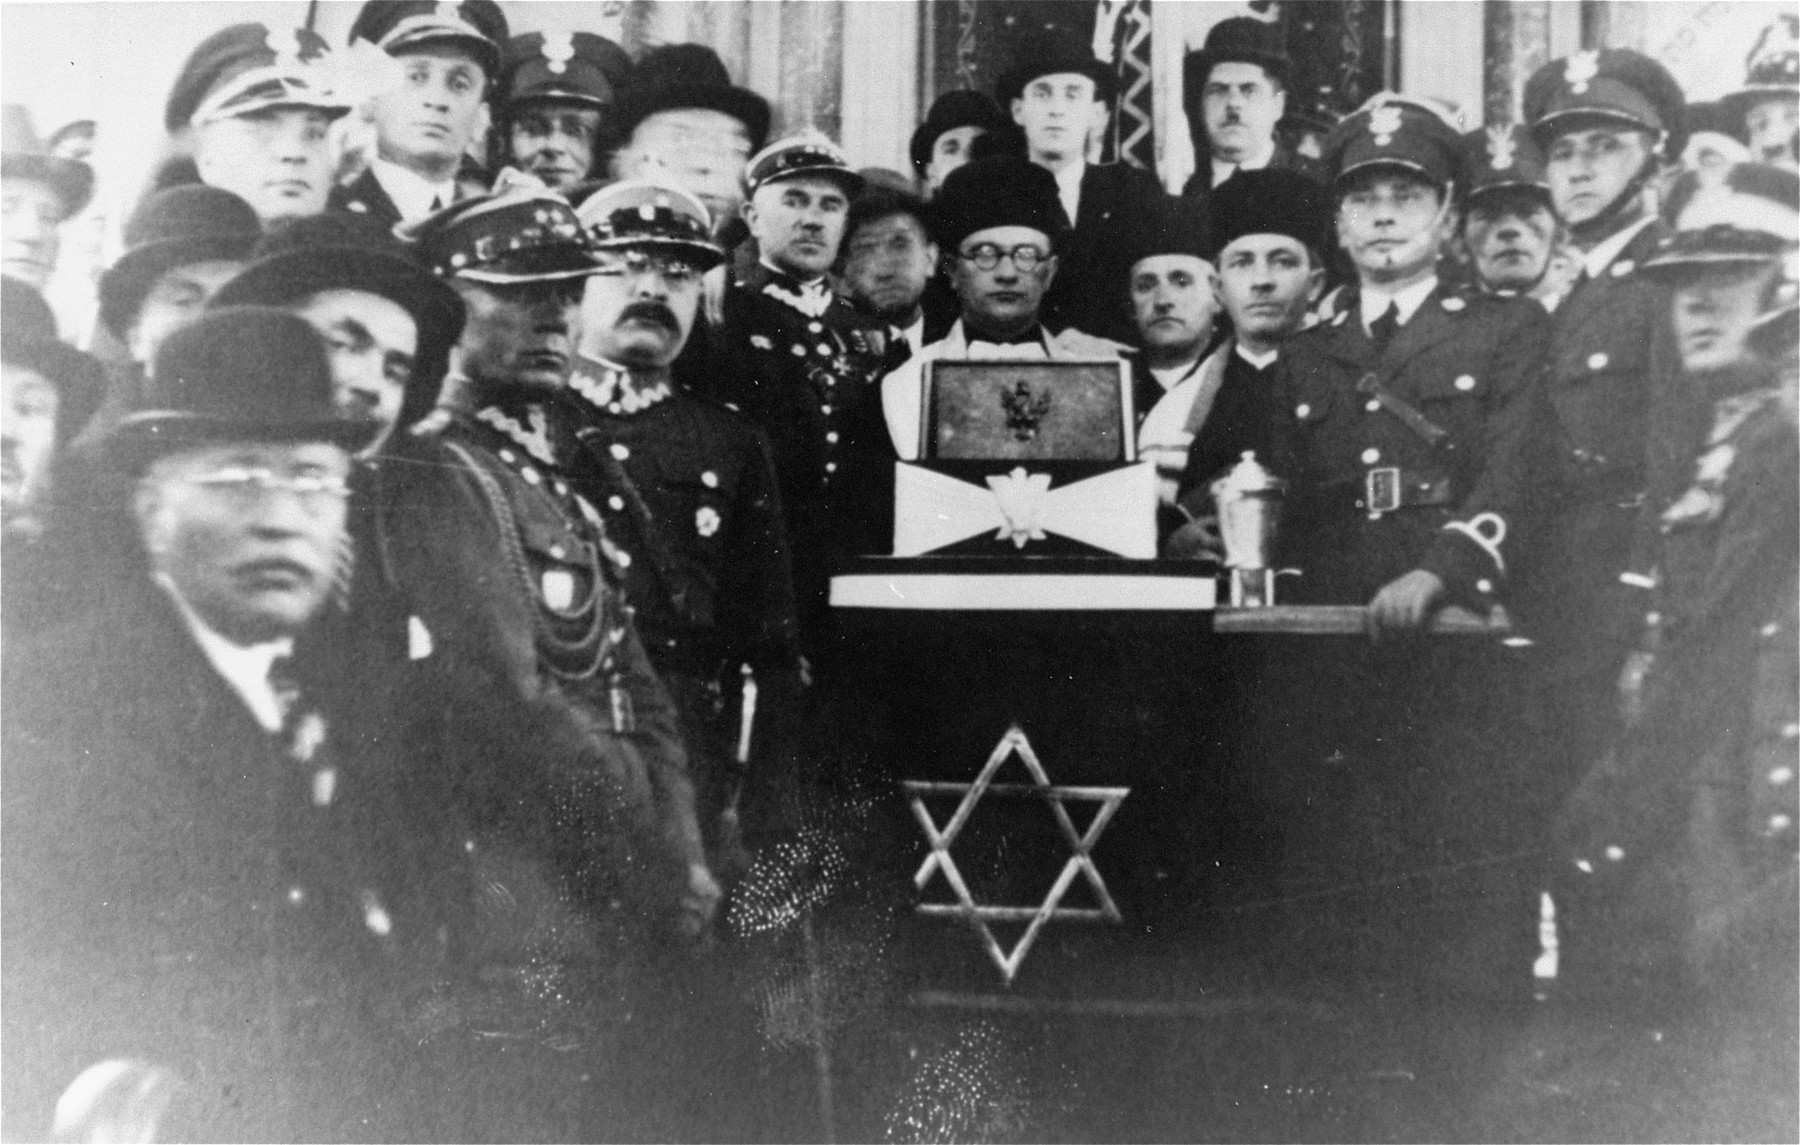 Chief Rabbi of the Polish Army, Boruch Steinberg poses with a group of Polish officers in a Krakow synagogue.  Rabbi Steinberg was later killed in Katyn massacre.